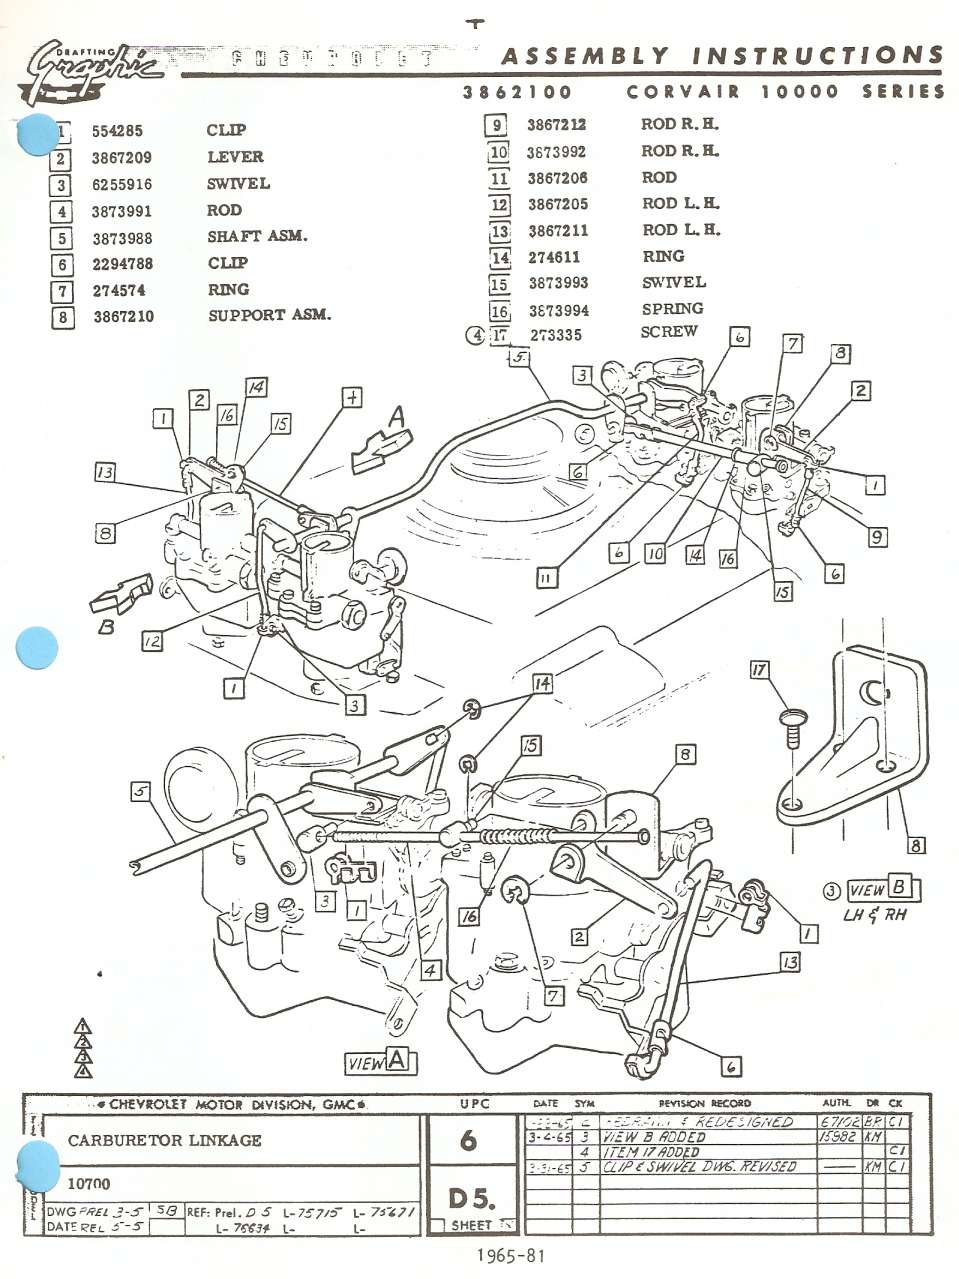 289 Ford Co Engine Diagram. Ford. Auto Wiring Diagram